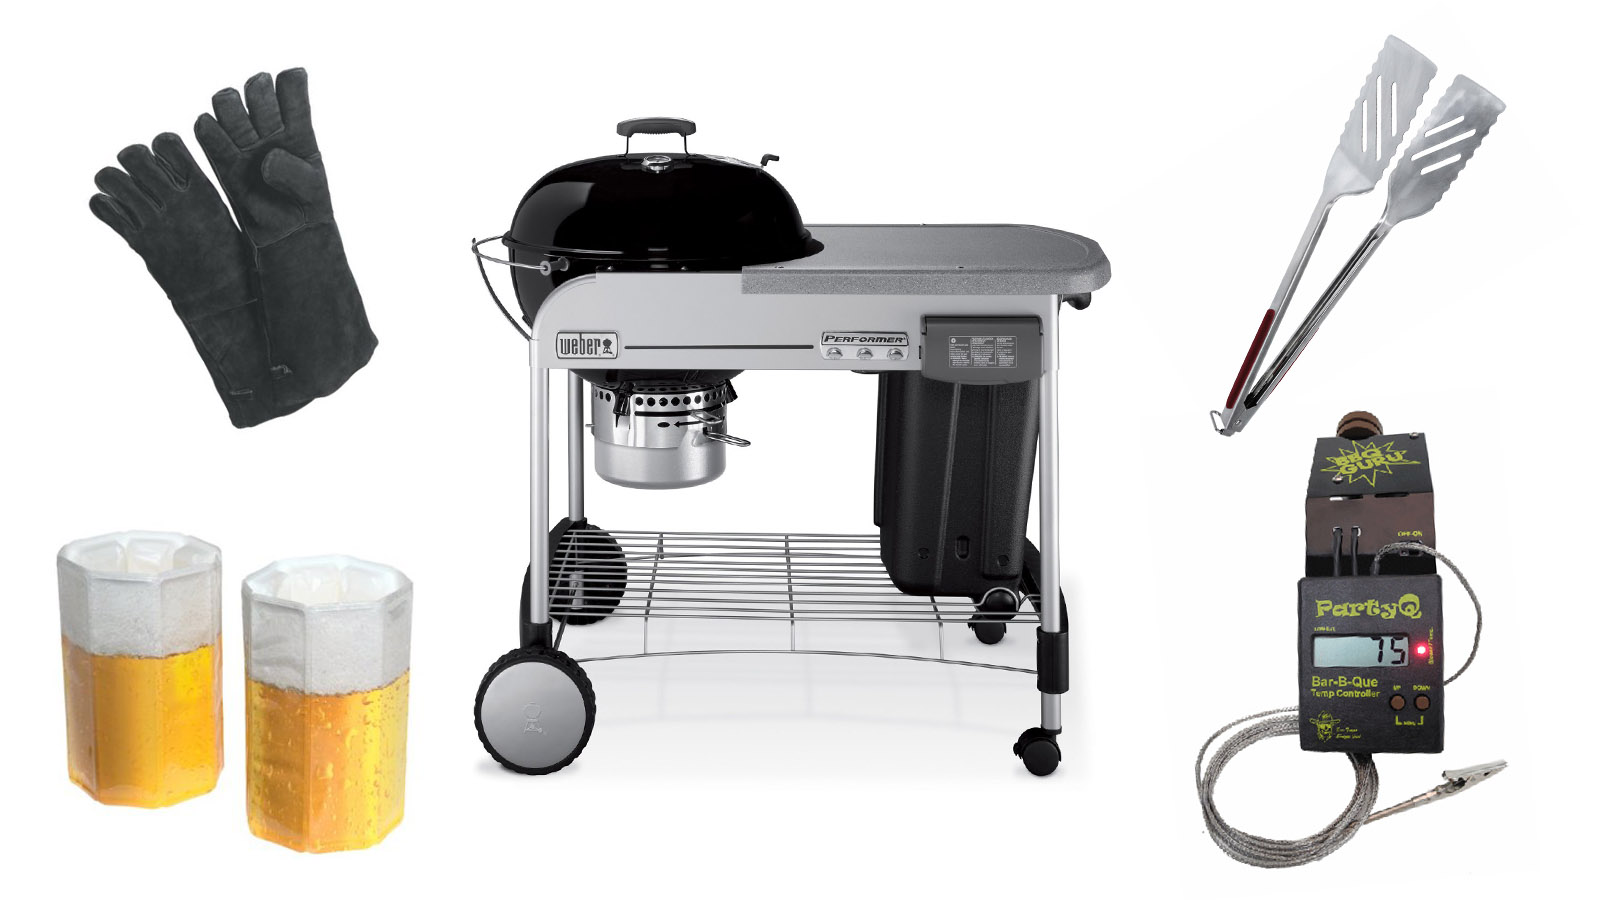 Gift Guide: Gifts For The BBQ Fanatic